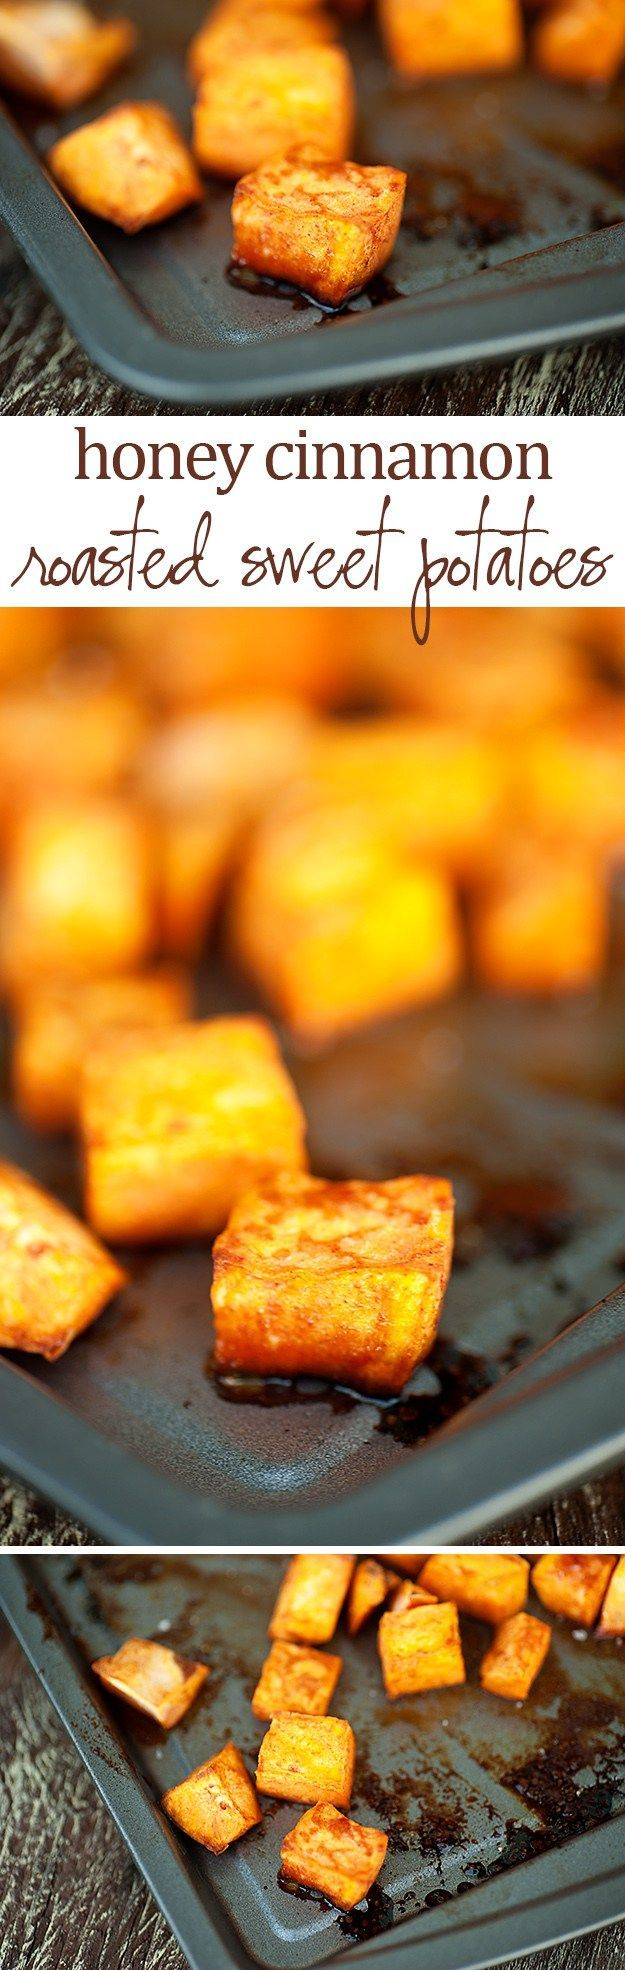 Honey Cinnamon Roasted Sweet Potatoes - perfect for #Thanksgiving!